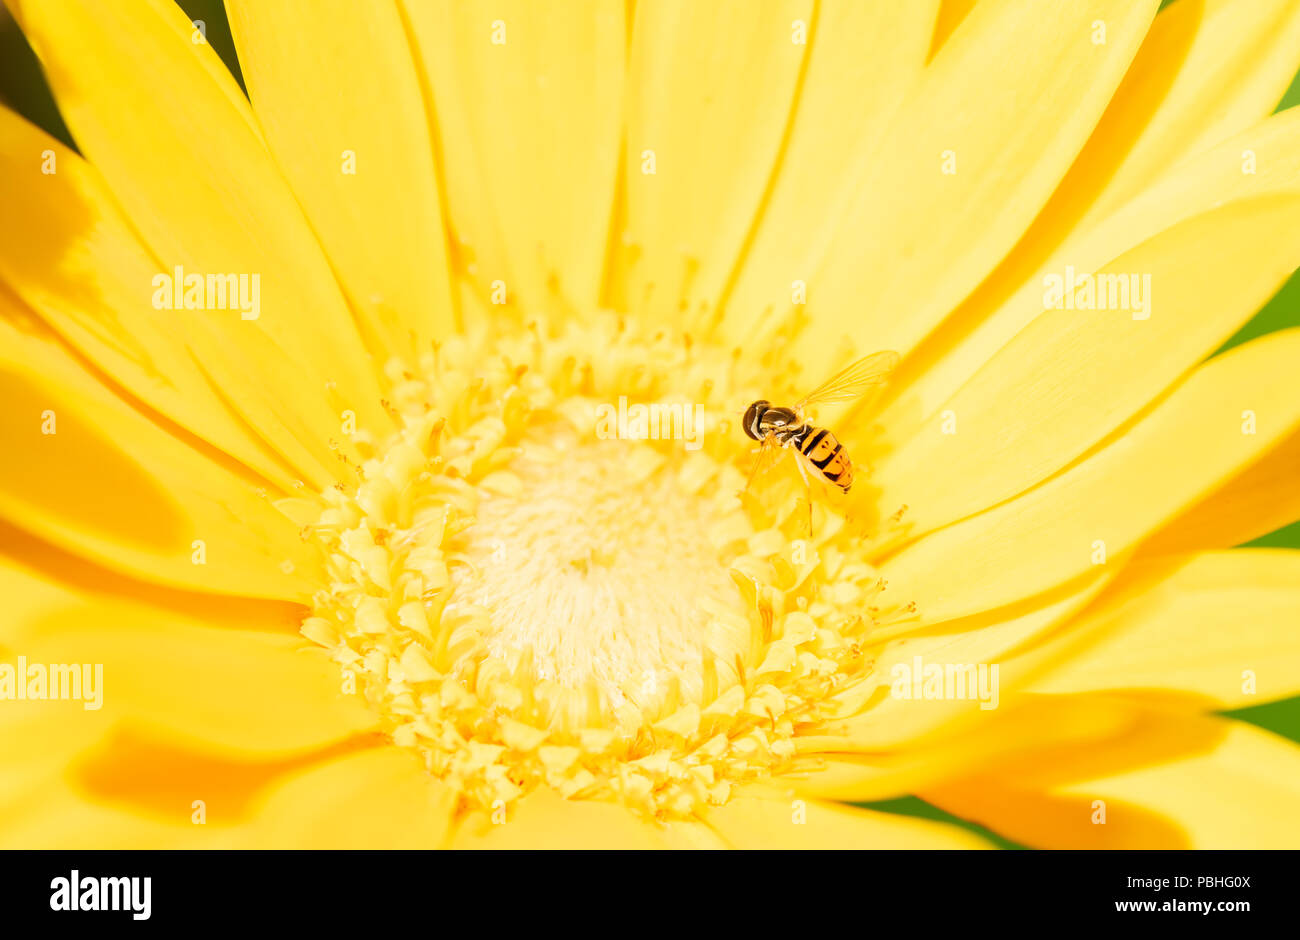 Macro of a Hoverfly (Toxomerus Marginatus) Collecting Pollen on a Bright Yellow Flower Stock Photo